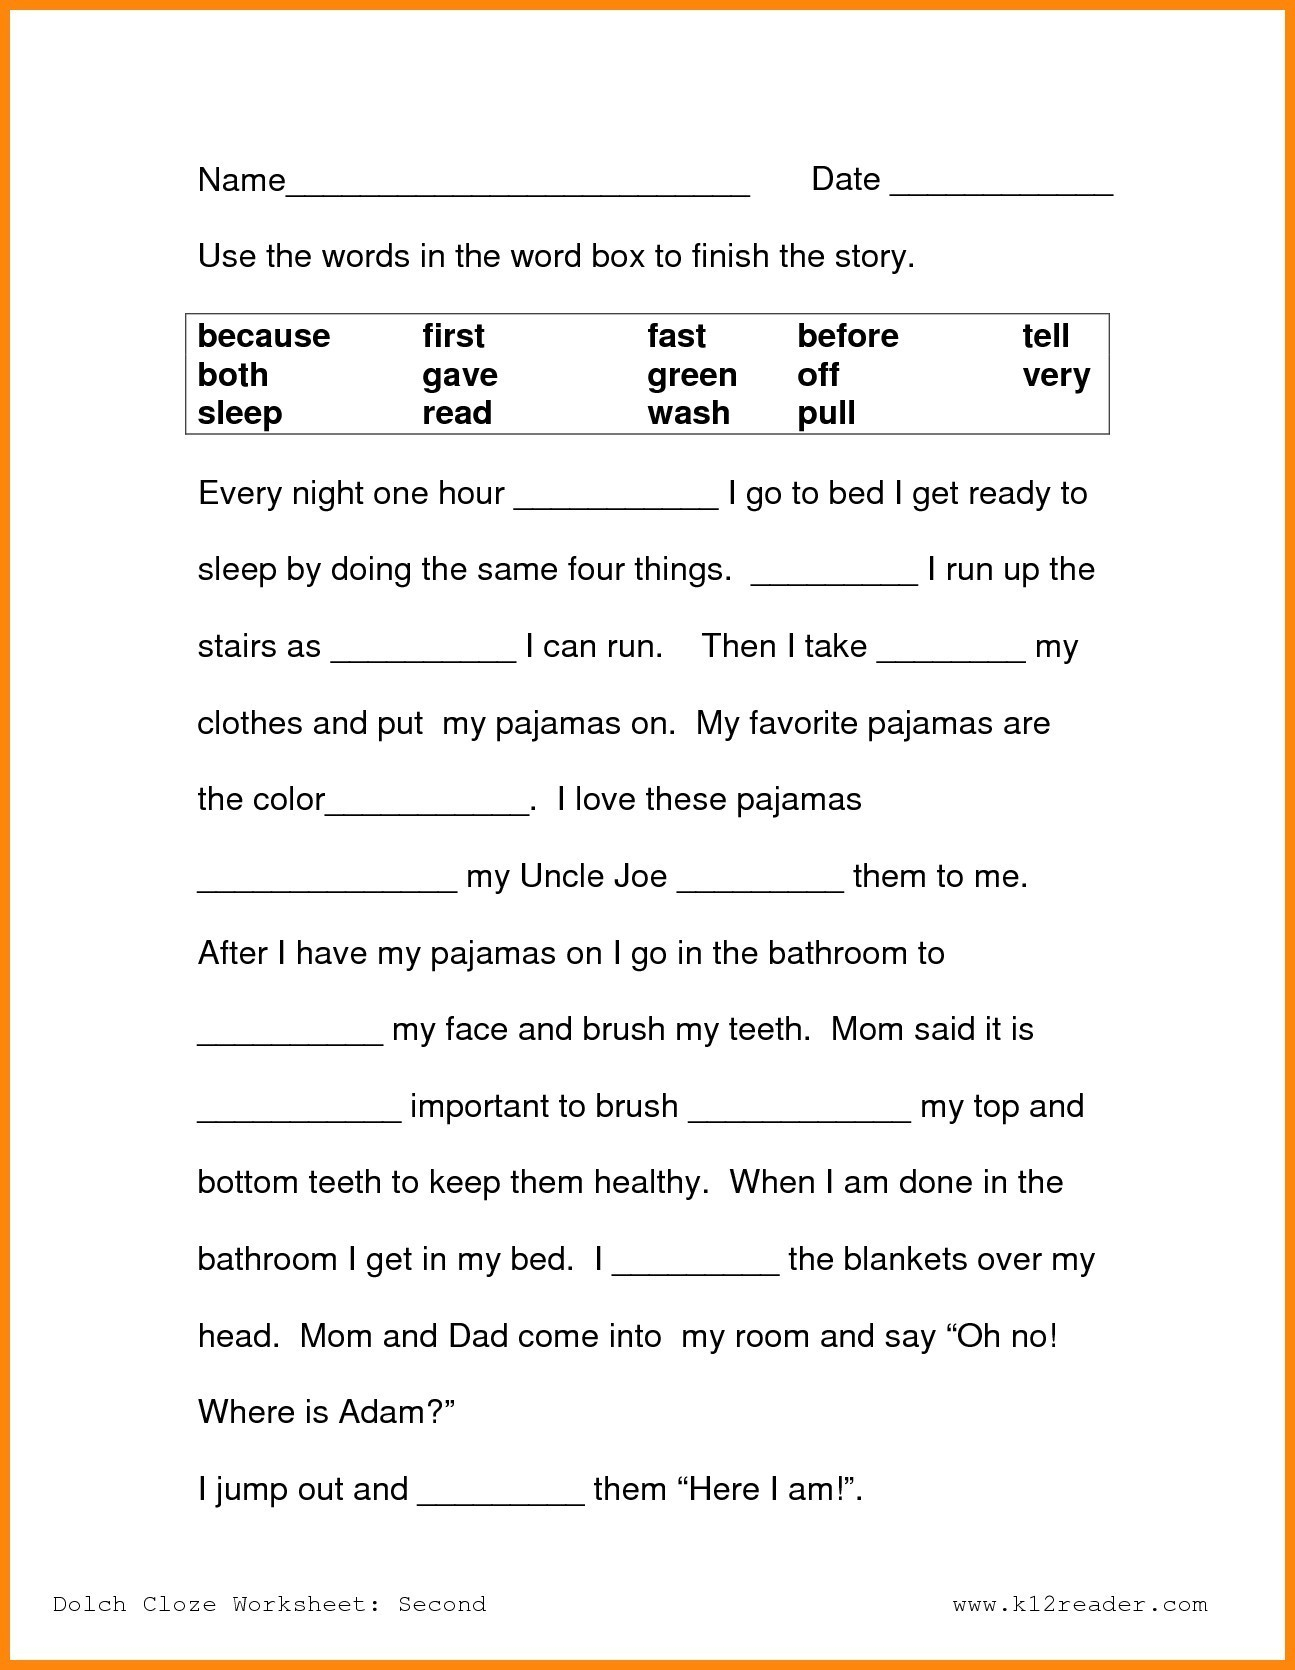 Free Printable Reading Worksheets For 2Nd Grade Lovely Reading - Free Printable Reading Games For 2Nd Graders